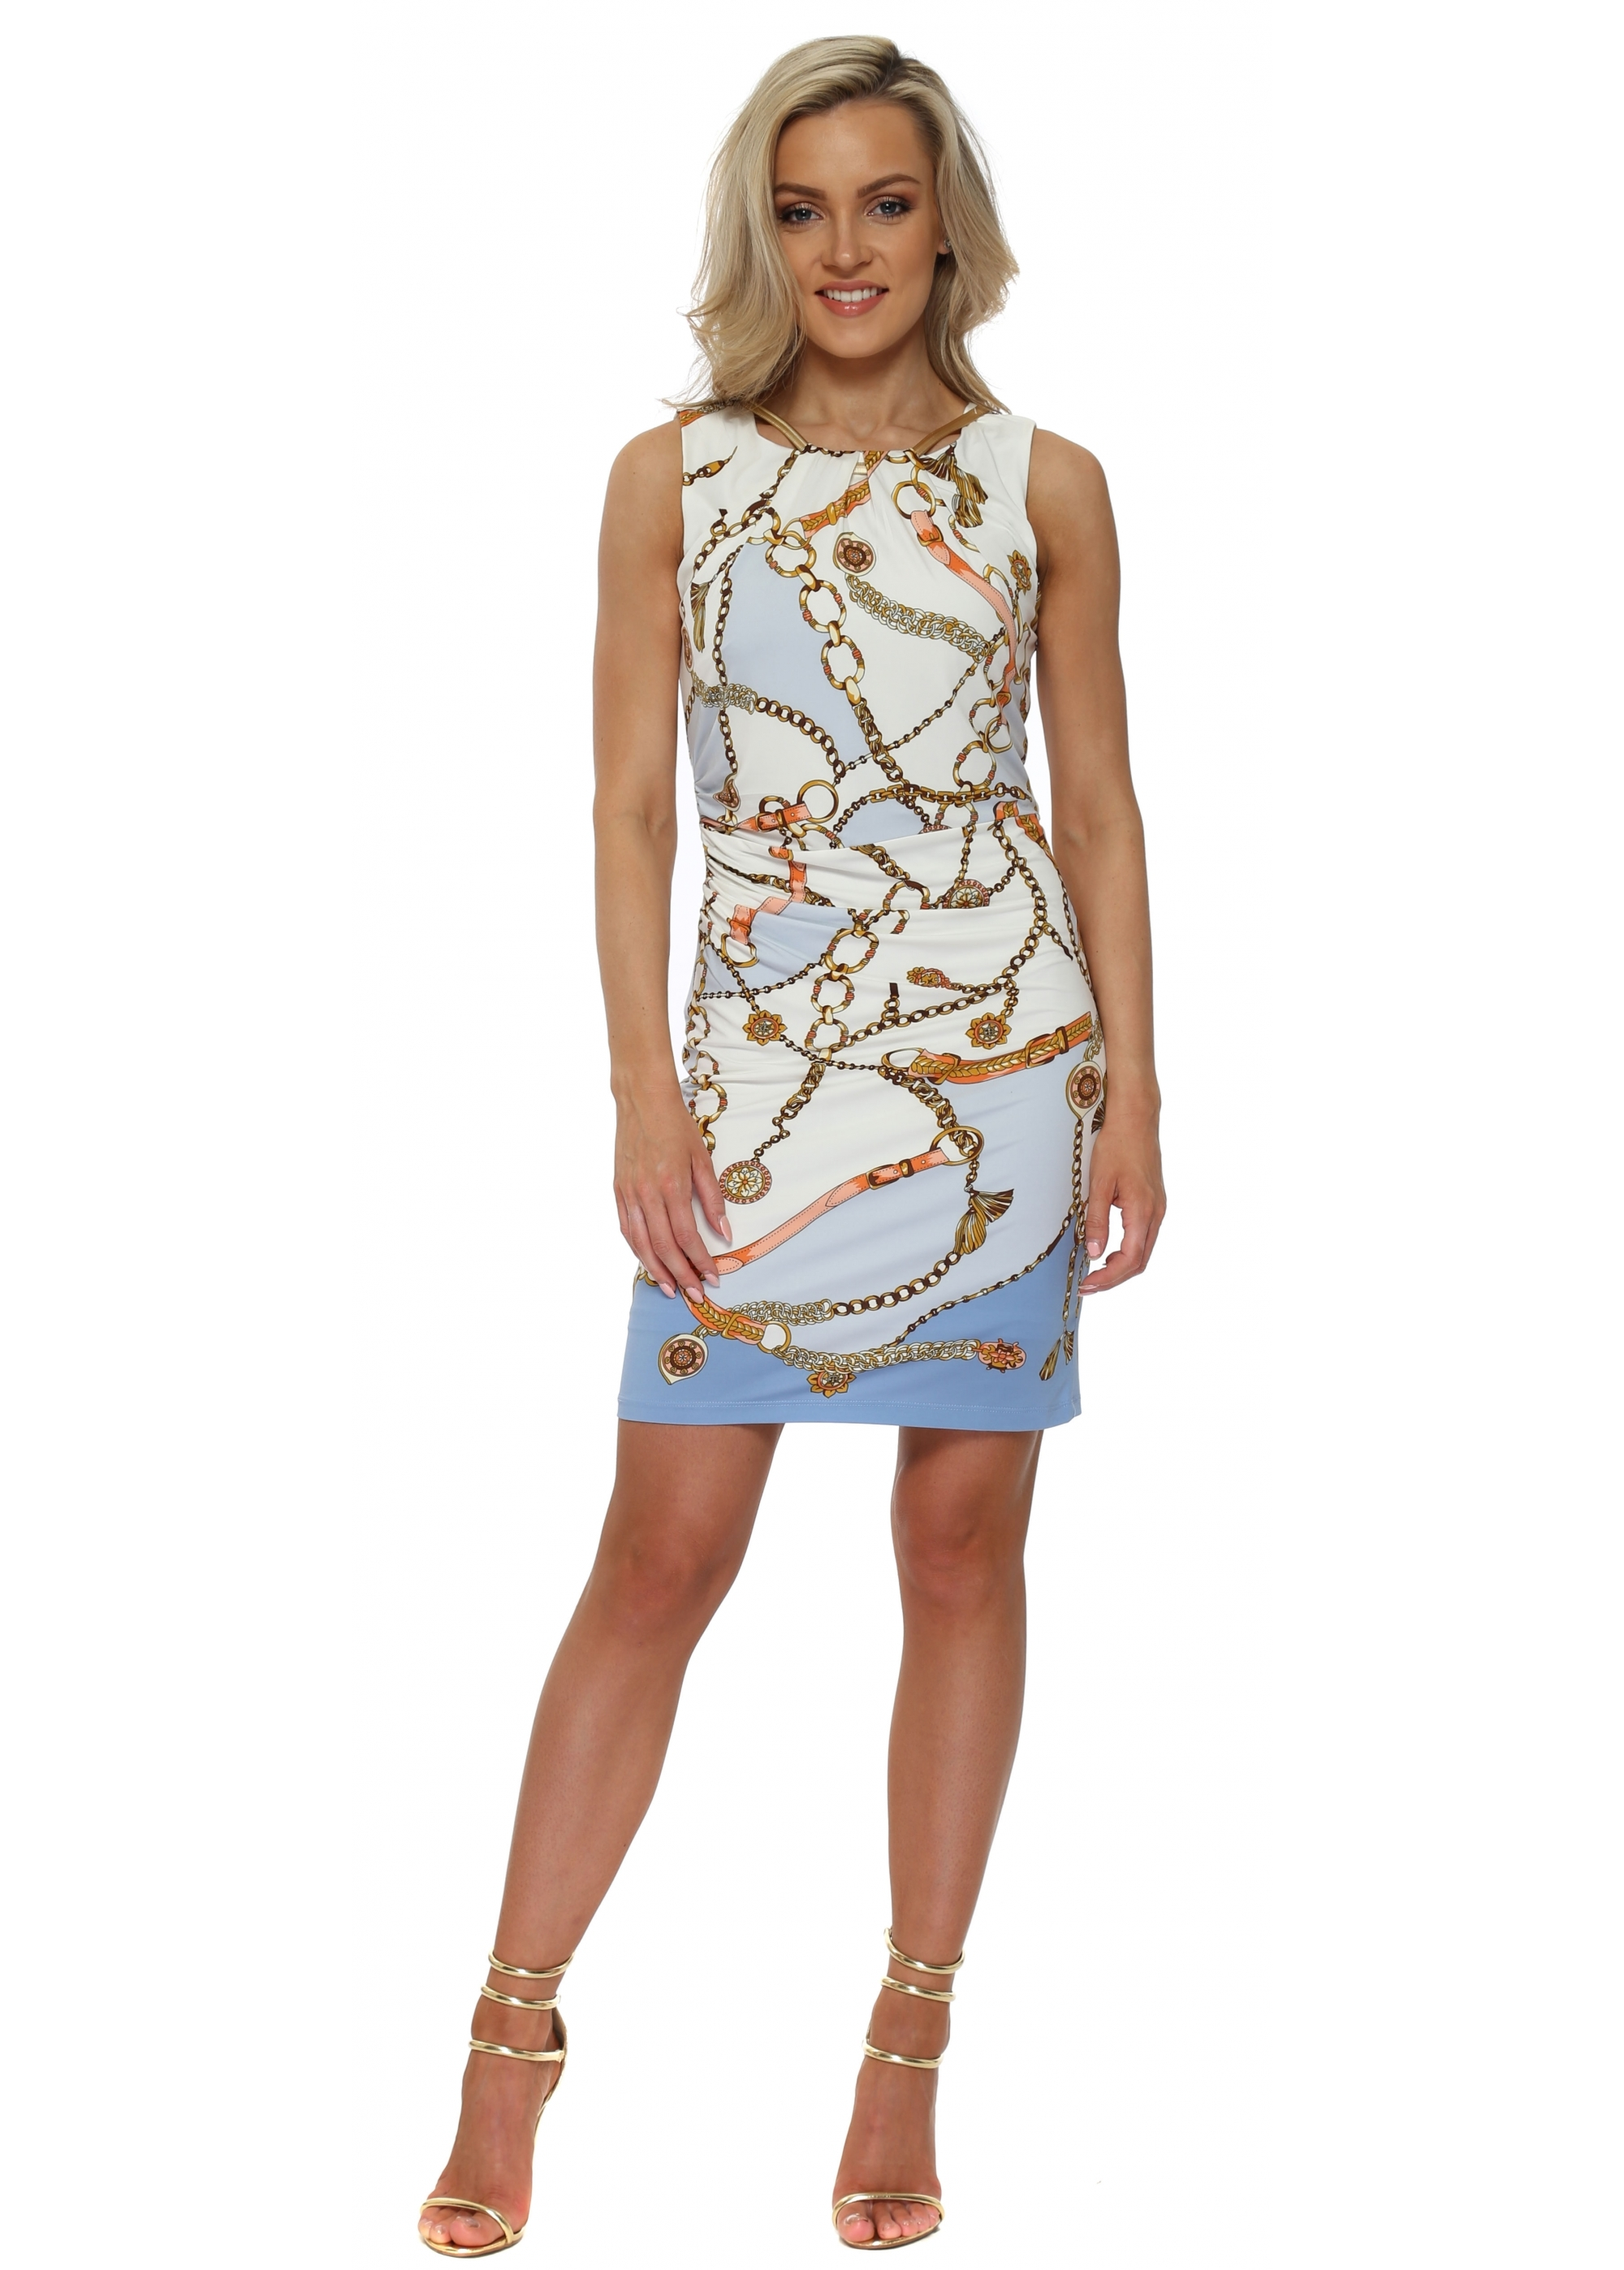 K Design Dress J862 Blue Amp White Gold Chain Print